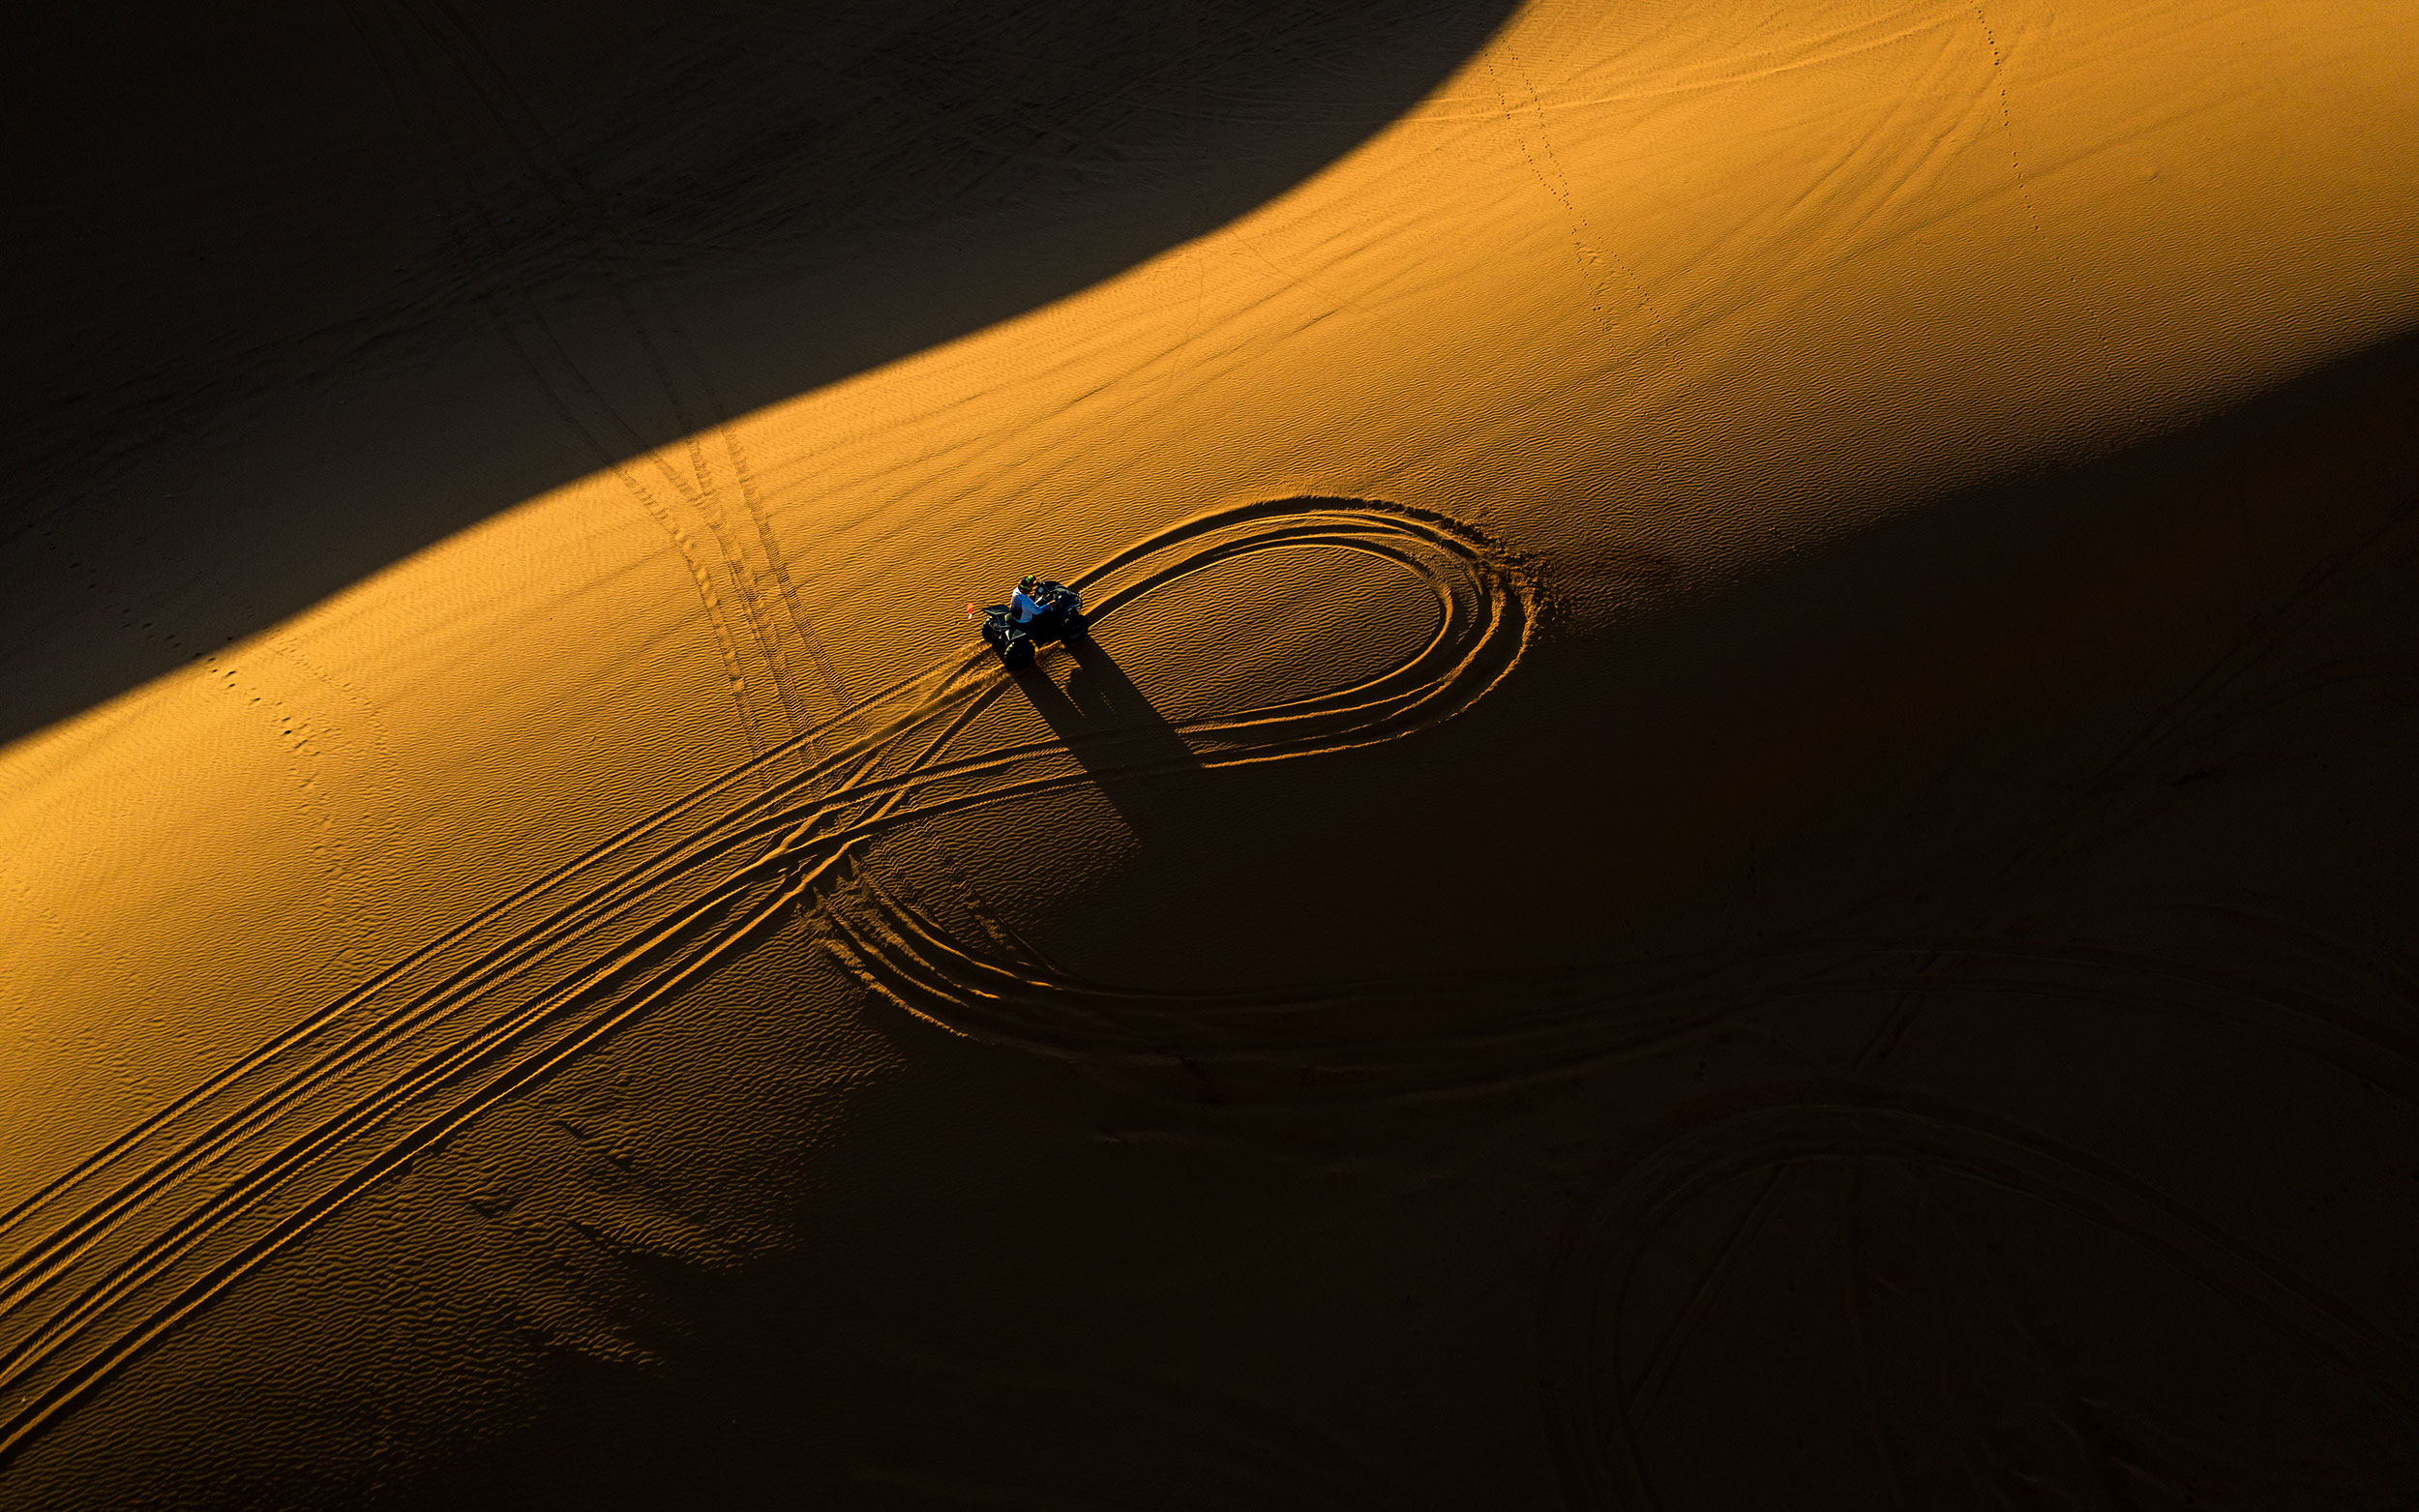 RedSands_DJI_0794